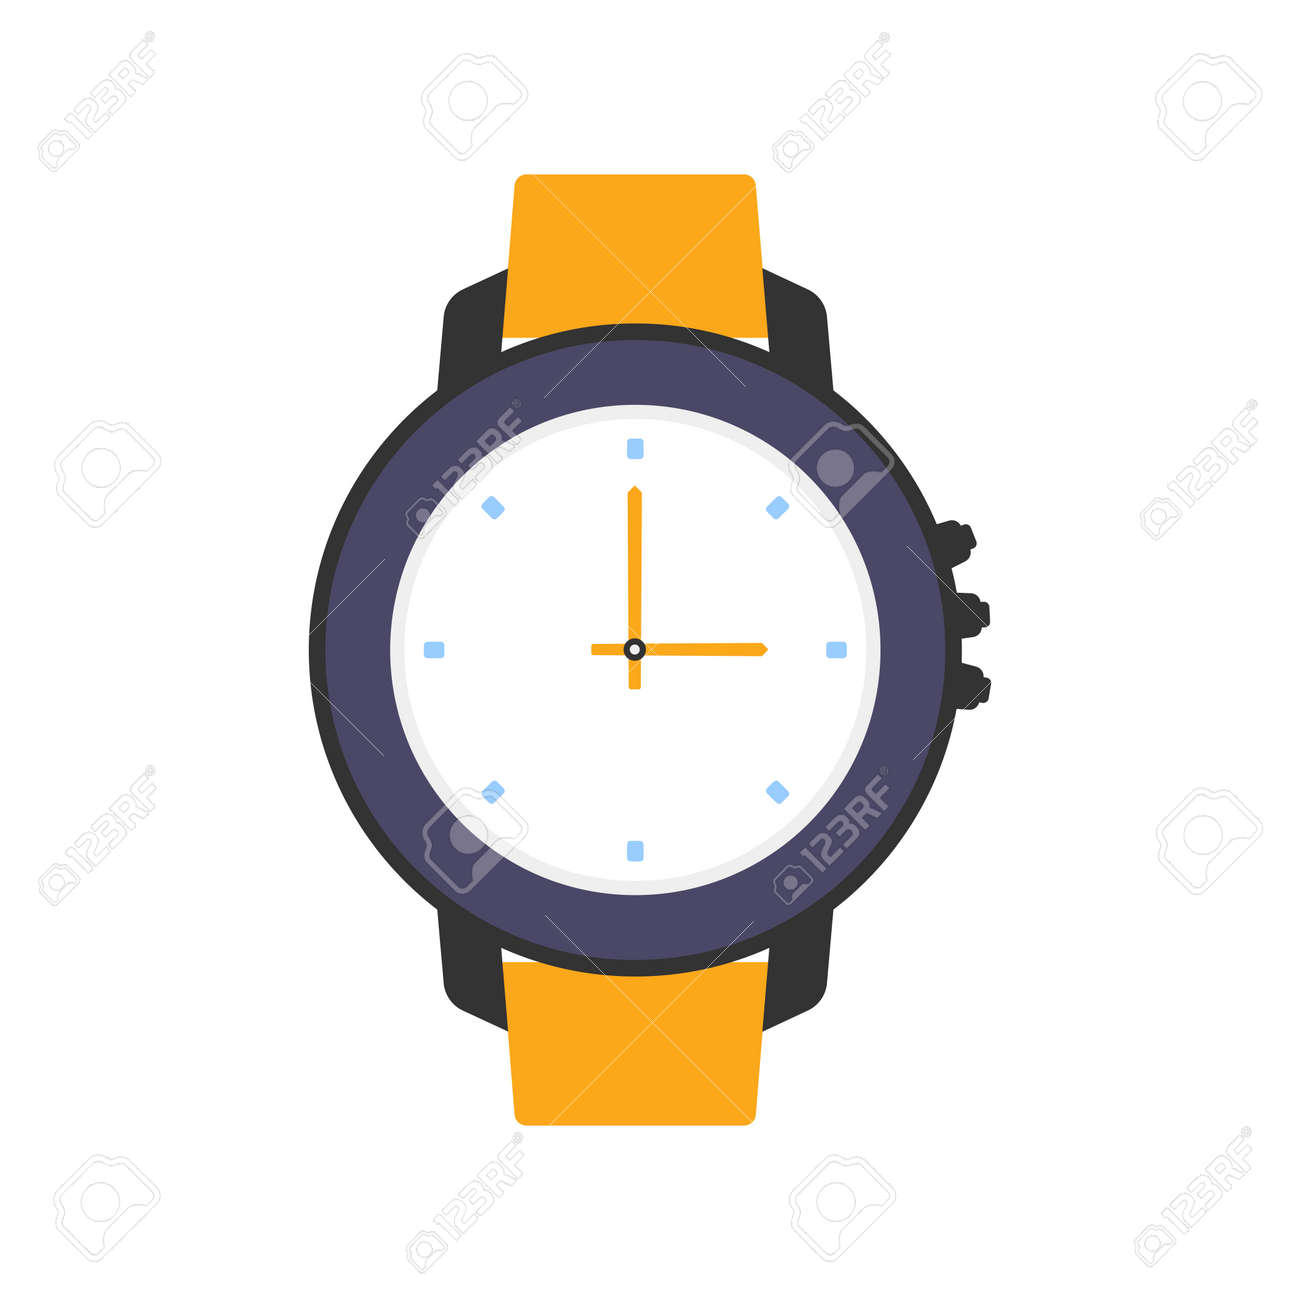 water proof wrist watch isolated on white background, vector illustration, diving watch - 167154733